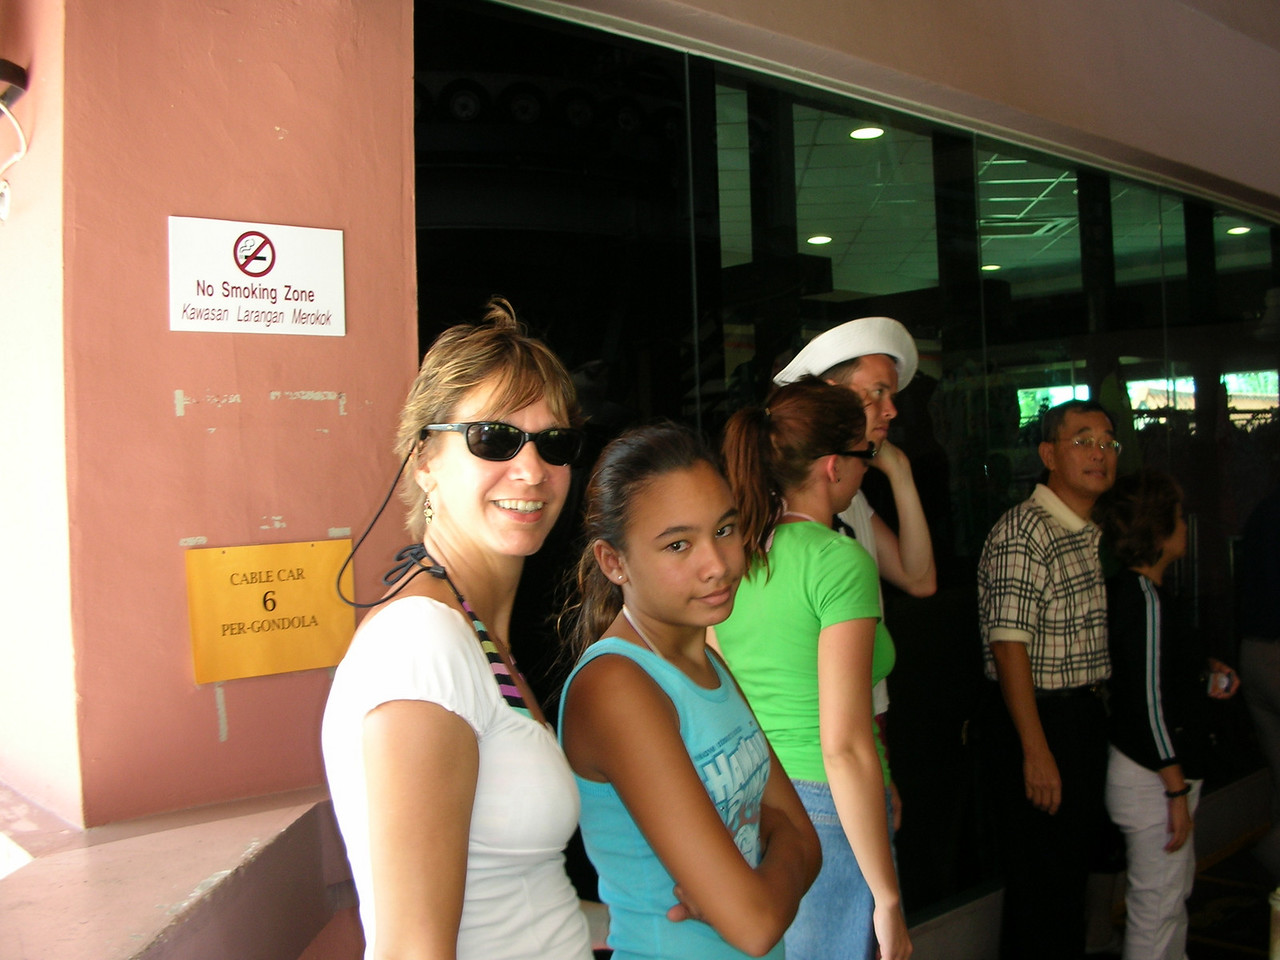 Waiting in line for the gondola in Langkawi